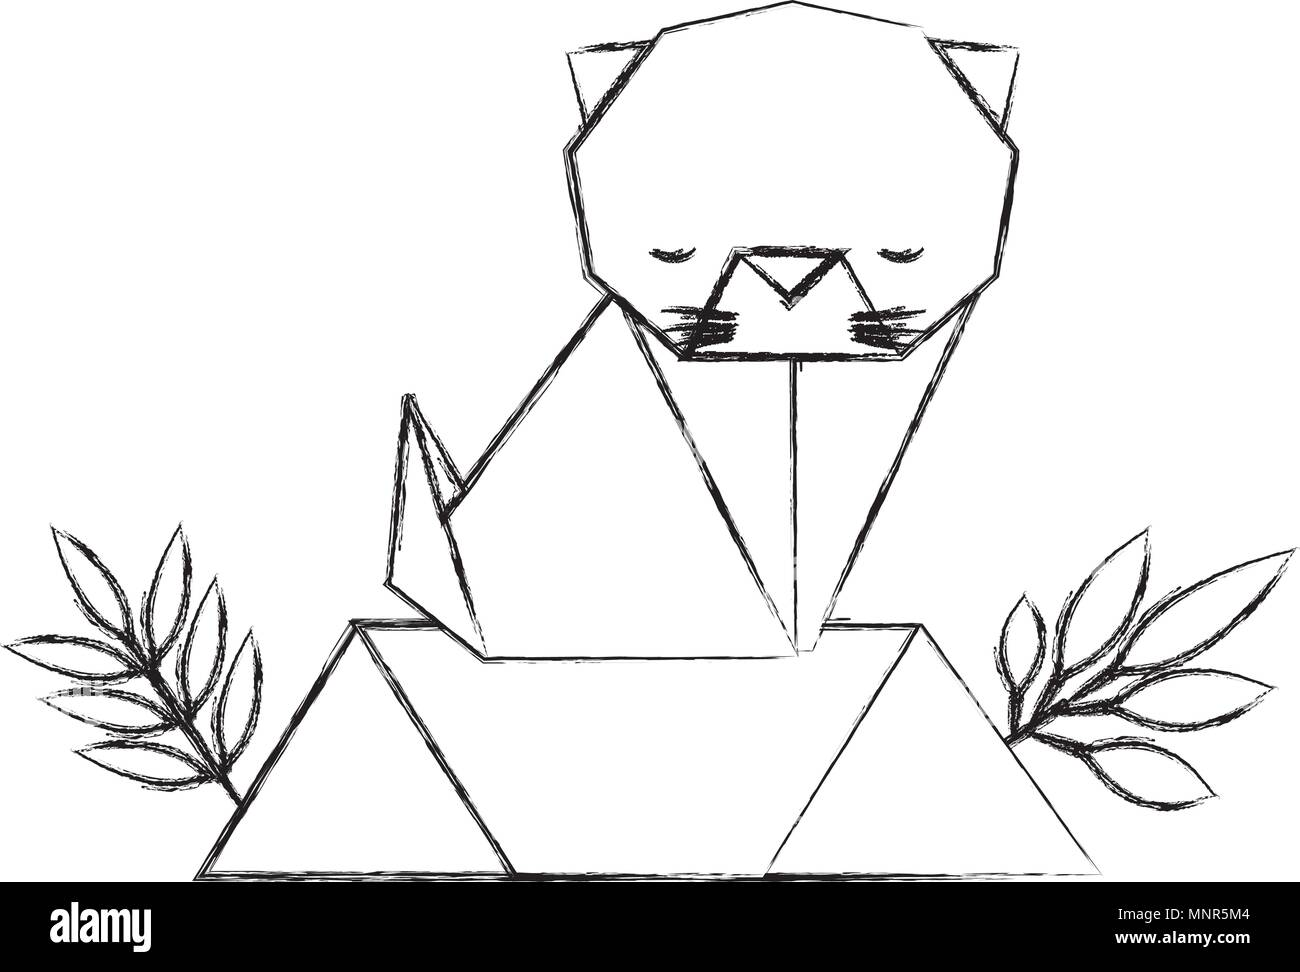 Cat In Field Stock Vector Images Alamy Origami Diagram Paper The